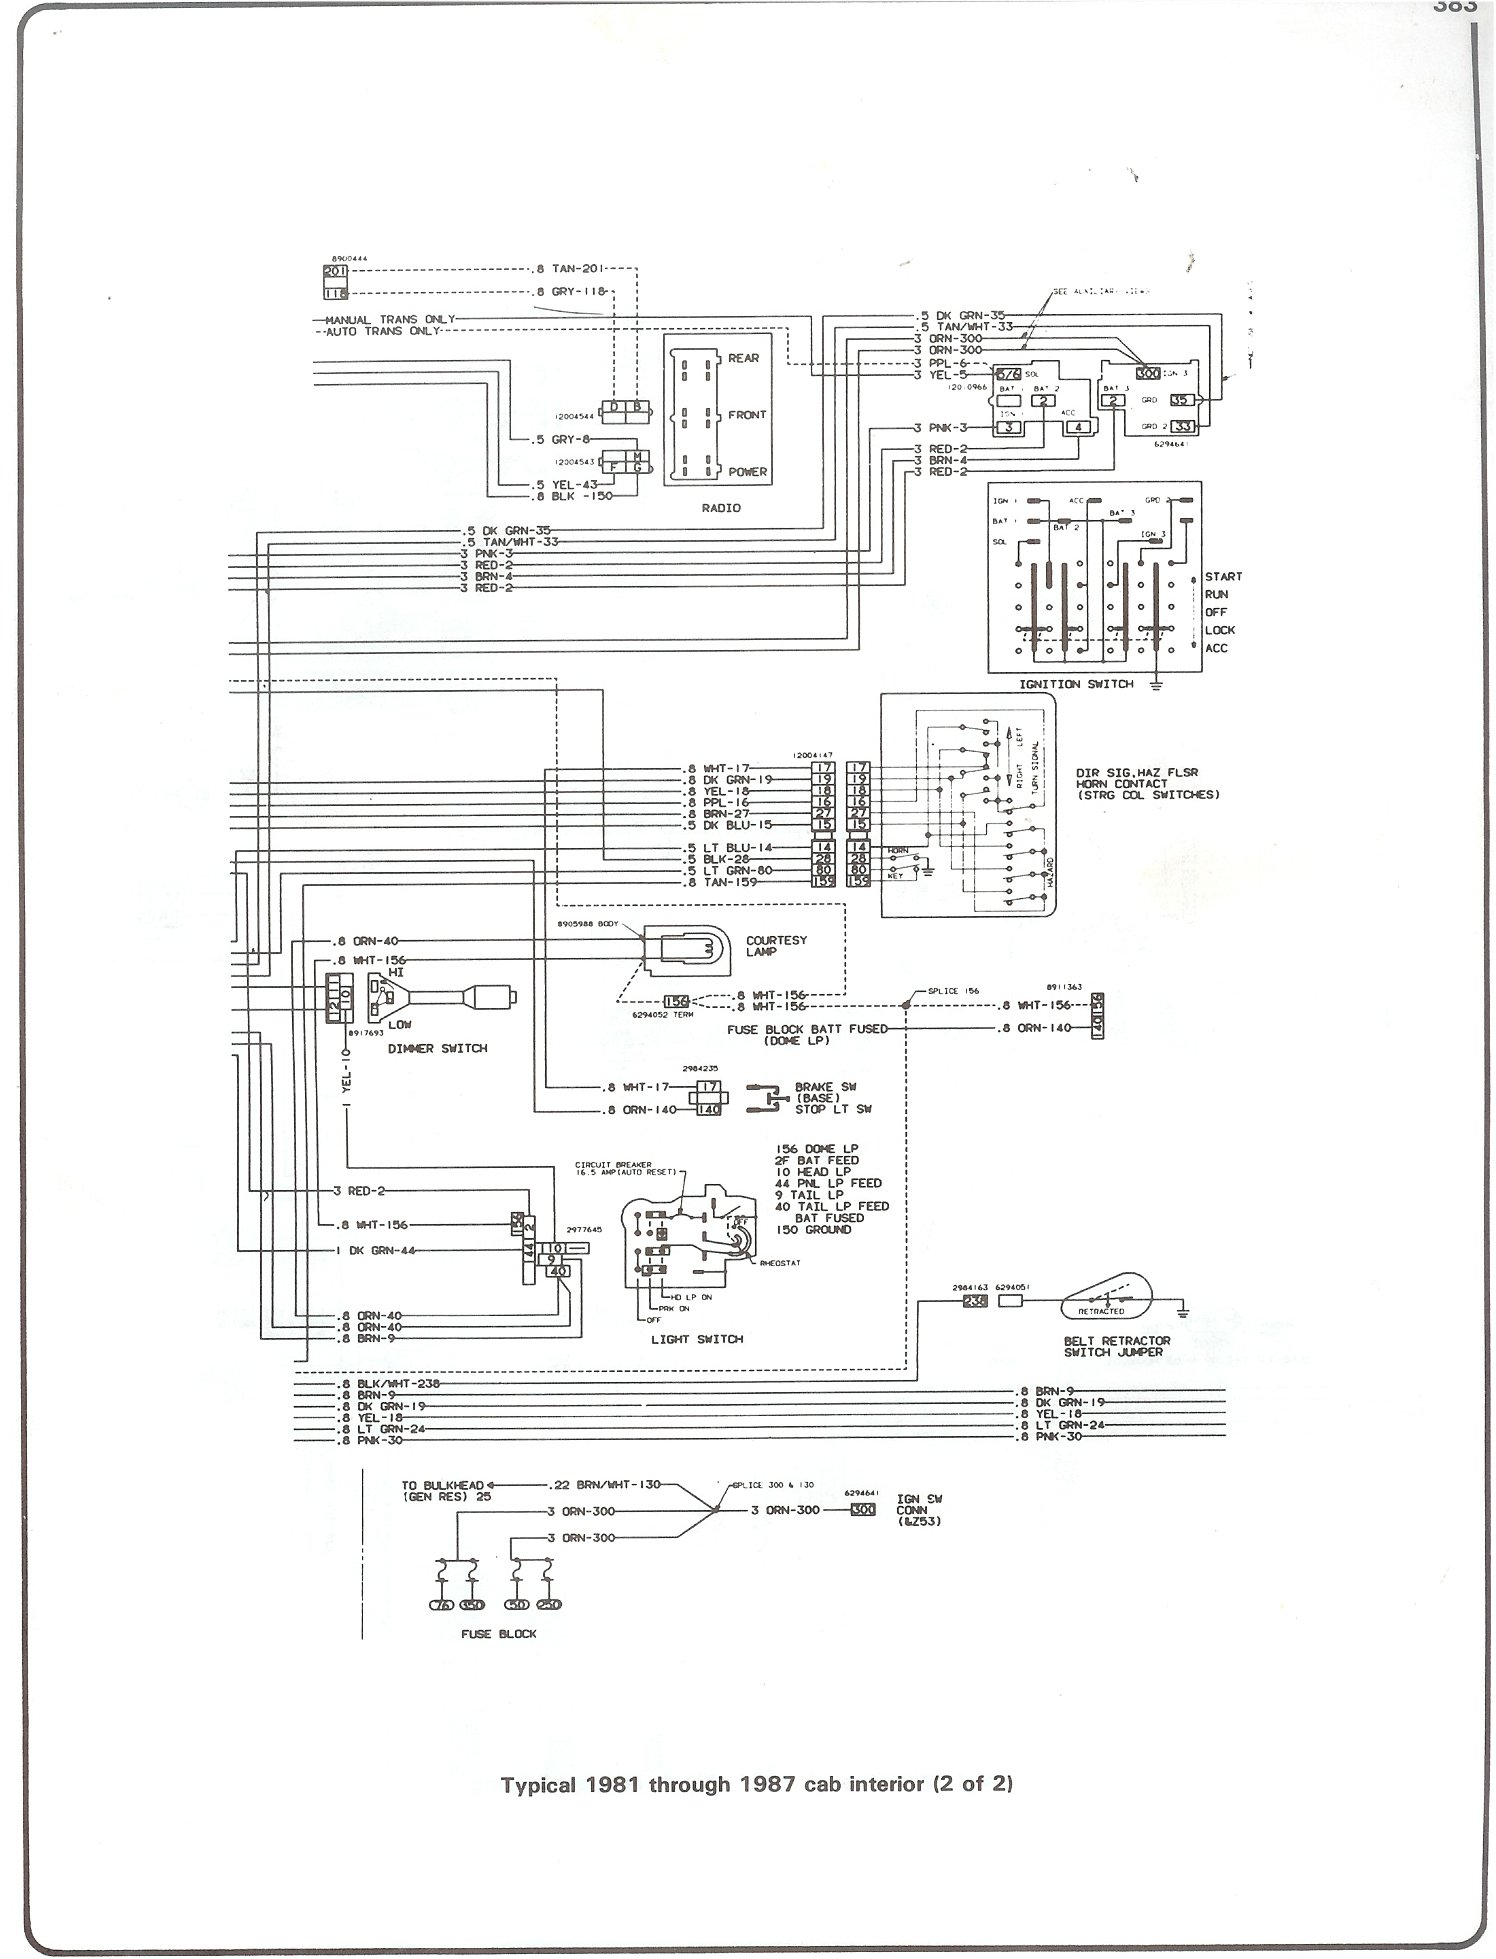 fuse box diagram for 1982 chevy caprice wiring diagram